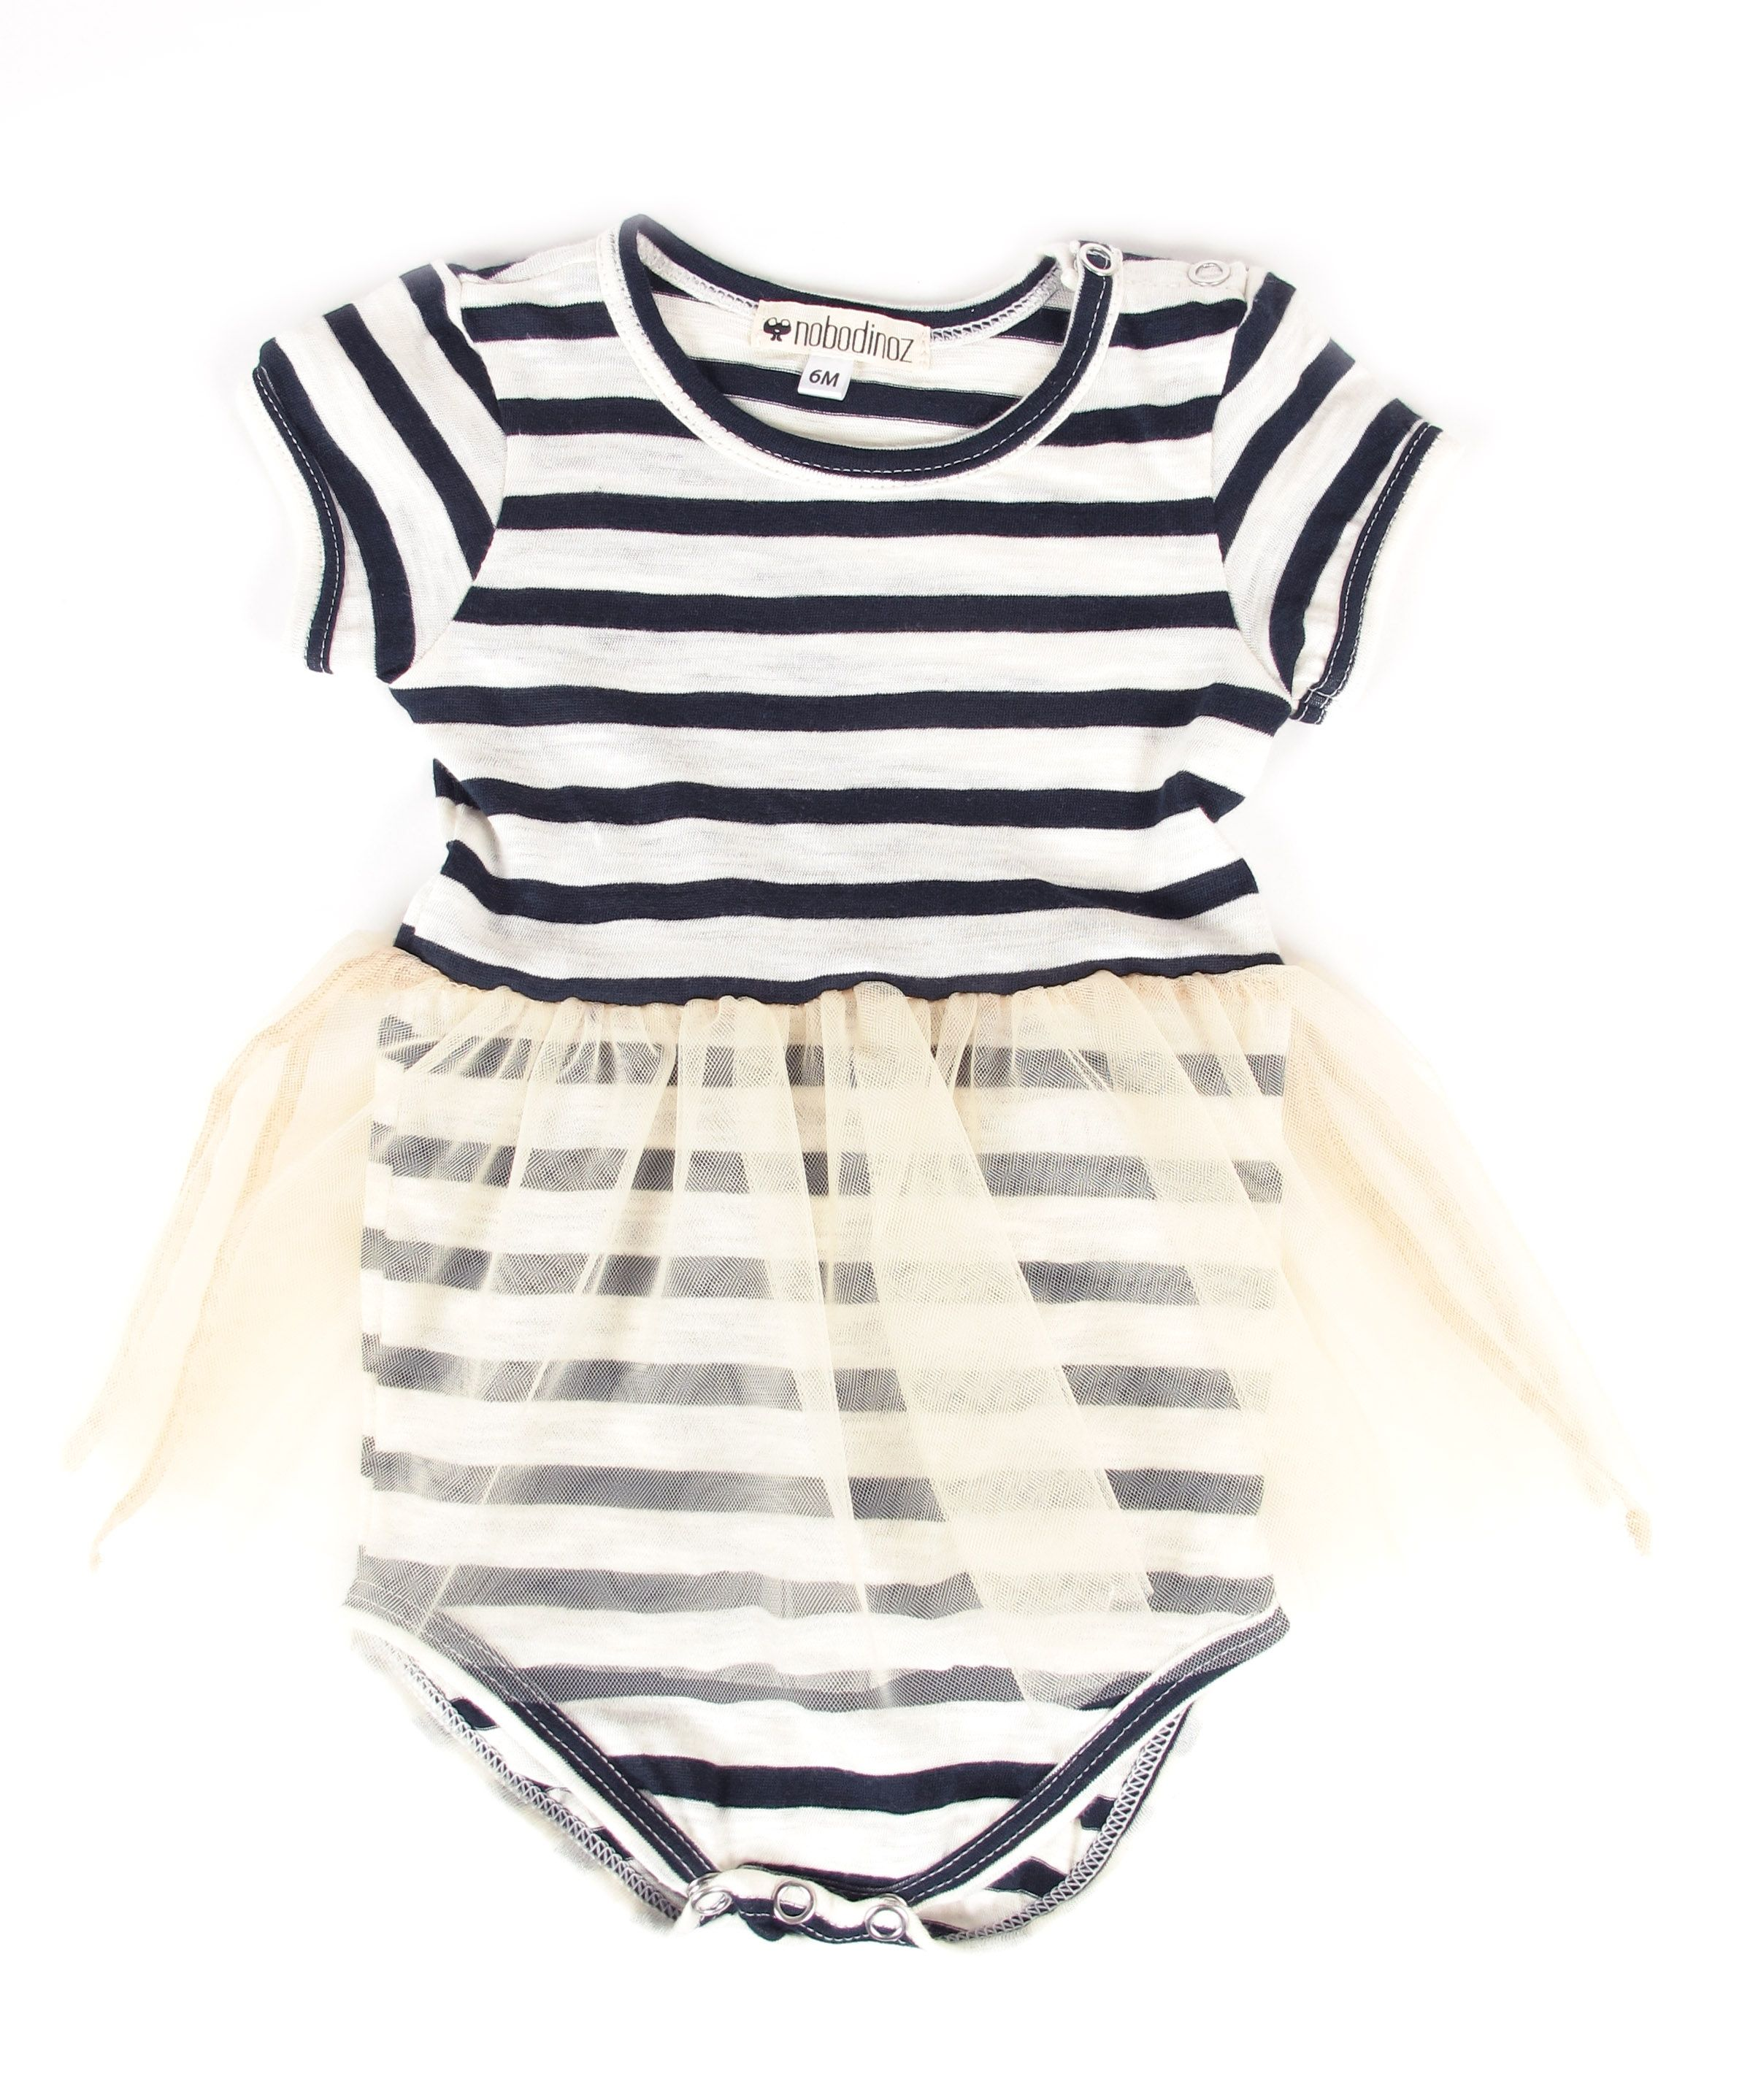 Nobodinoz Body Tutu Tamure With Navy Stripes   Scandinavian Minimall ... 9cbefe27df4